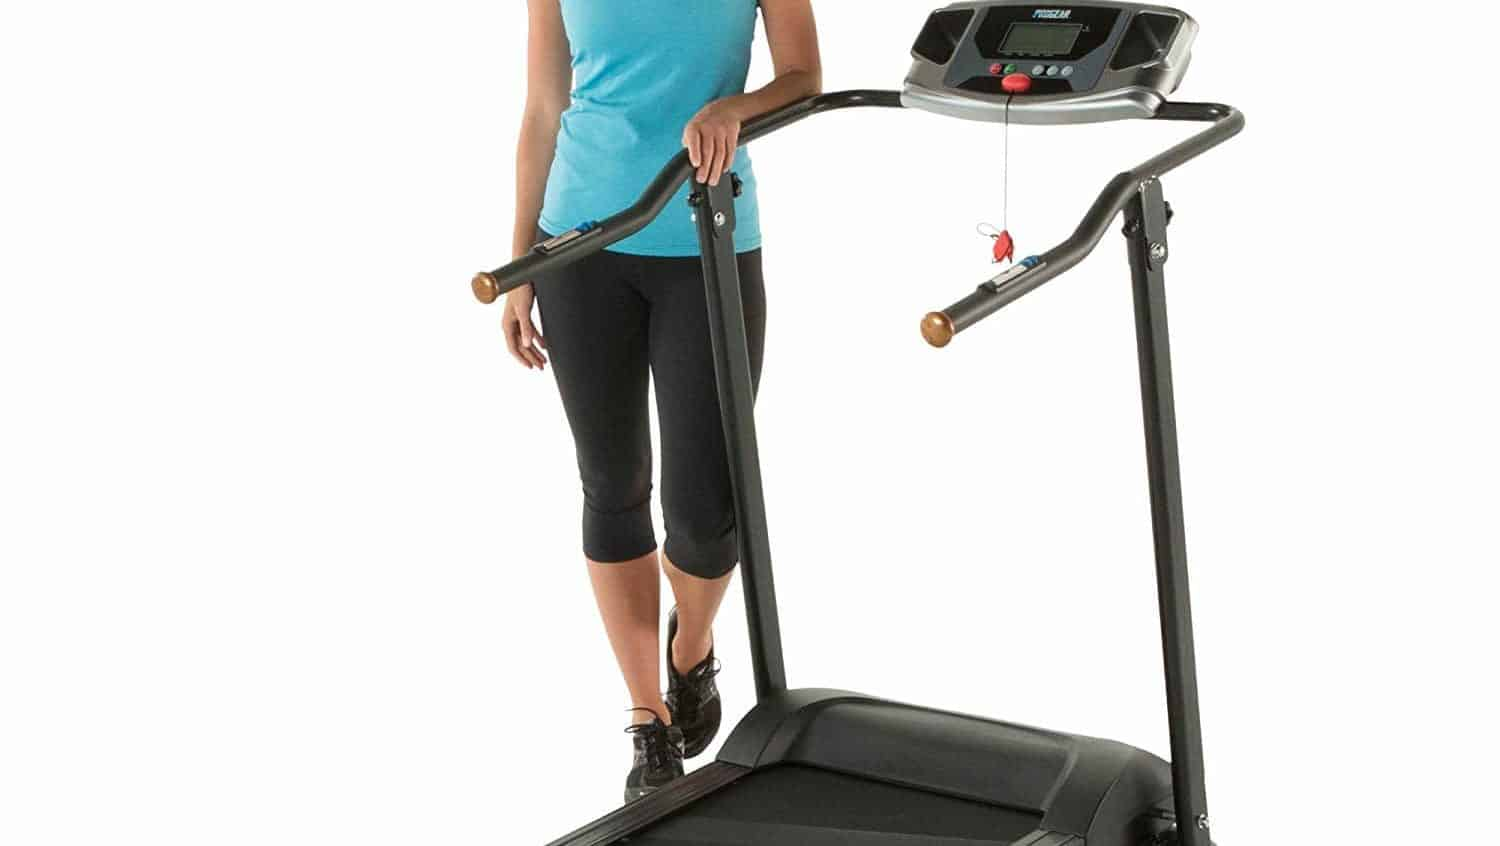 ProGear HCXL 4000 Walking and Jogging Treadmill Review